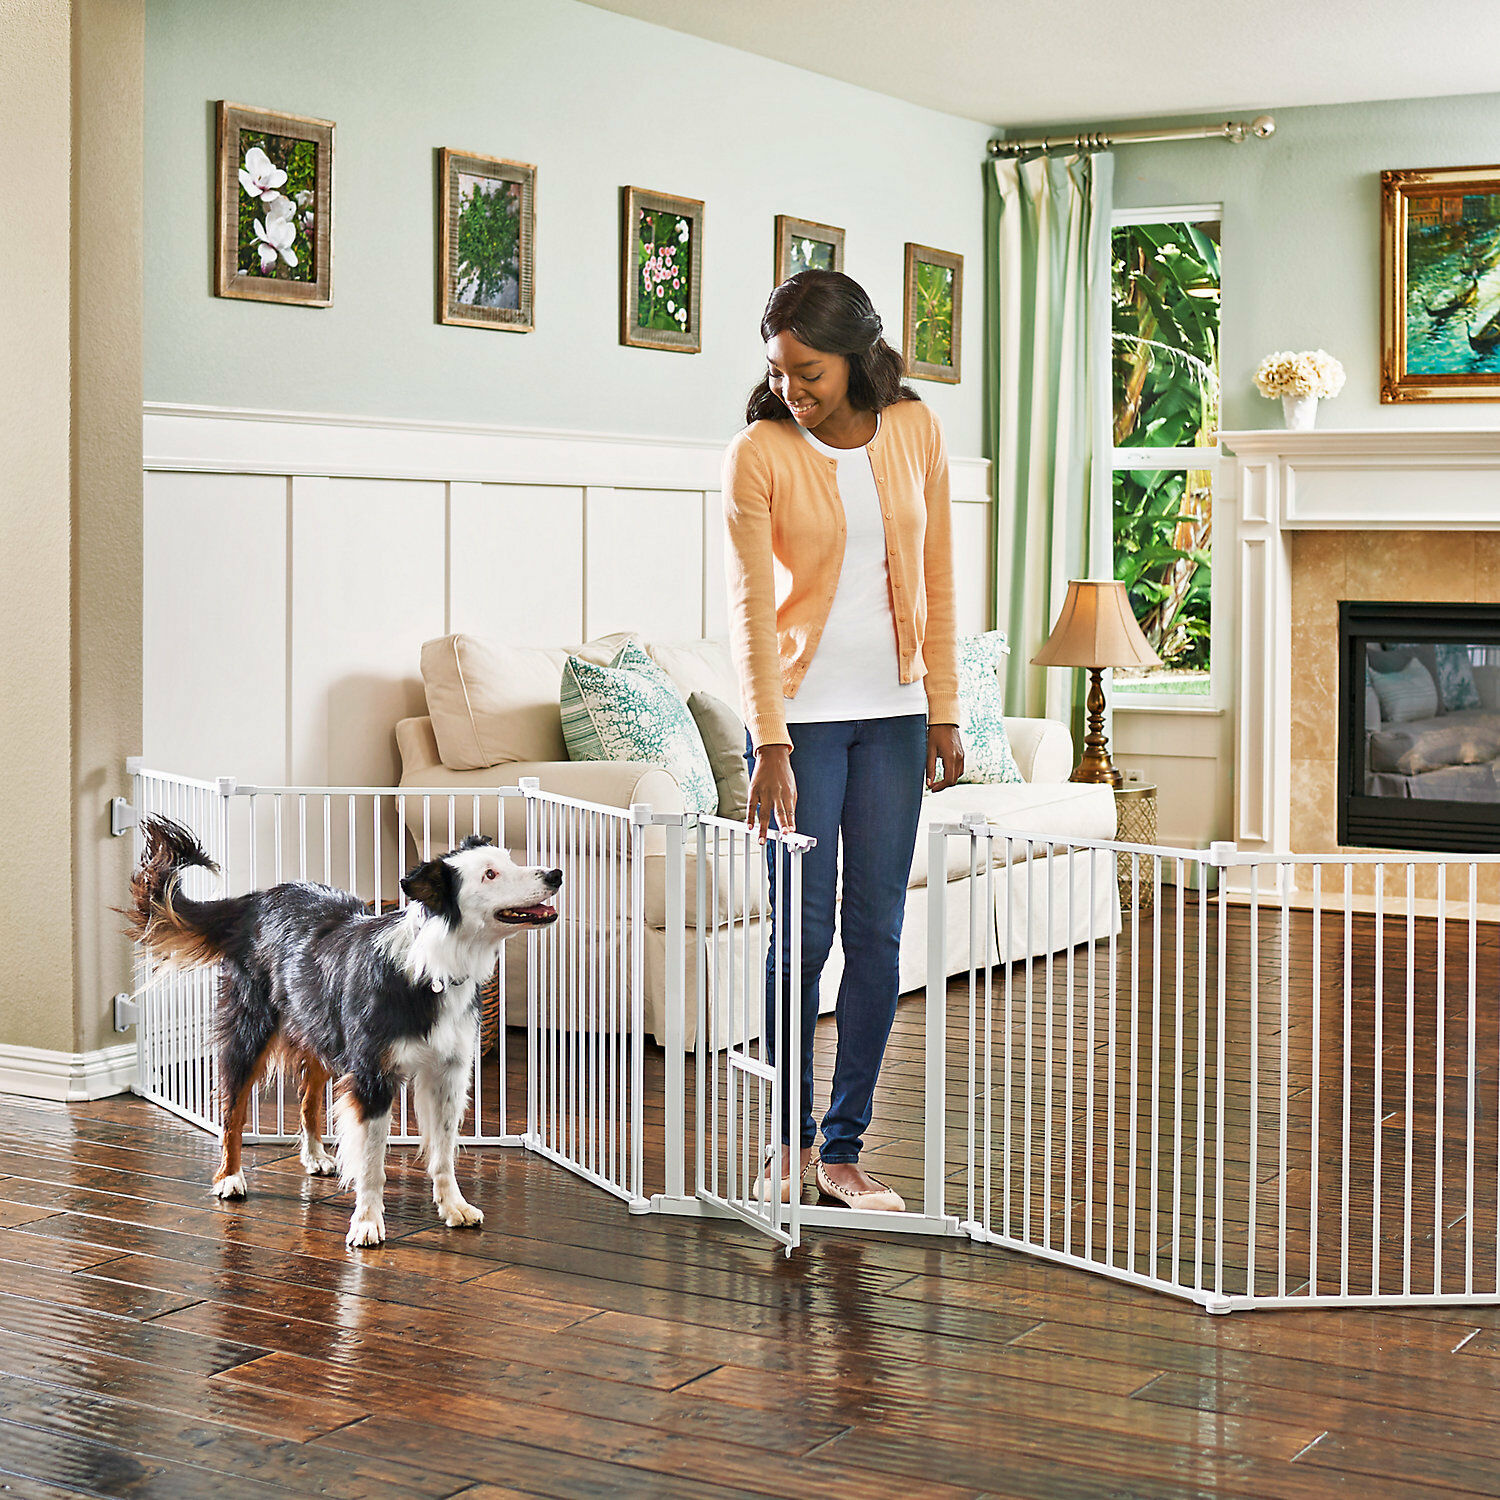 You & Me Congreenible Walk-Thru Pet Gate and Play Yard, 144  W x 28  H